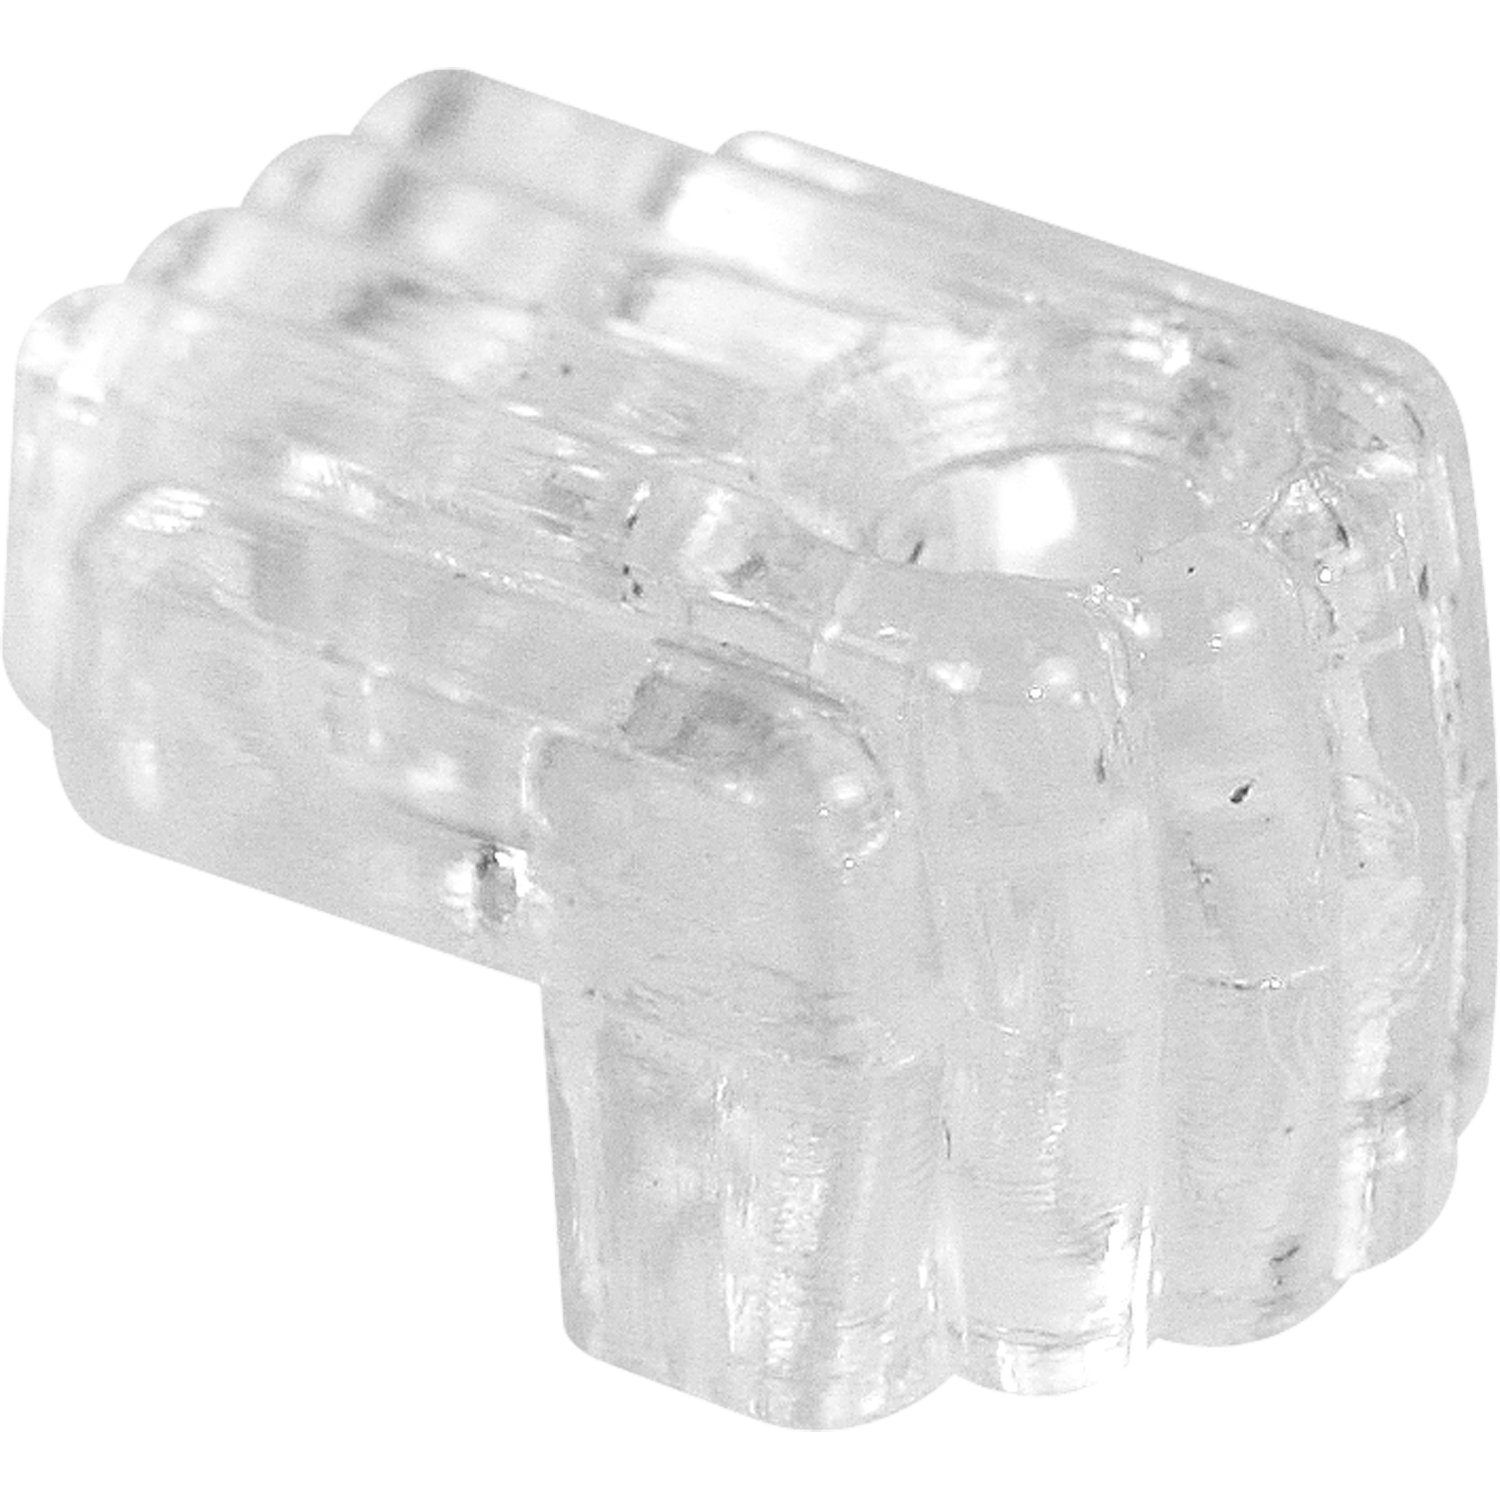 Prime-Line MP9003 Mirror Clip, 1/4 in. Offset, Plastic, Clear, Includes Installation Fasteners, Pack of 25